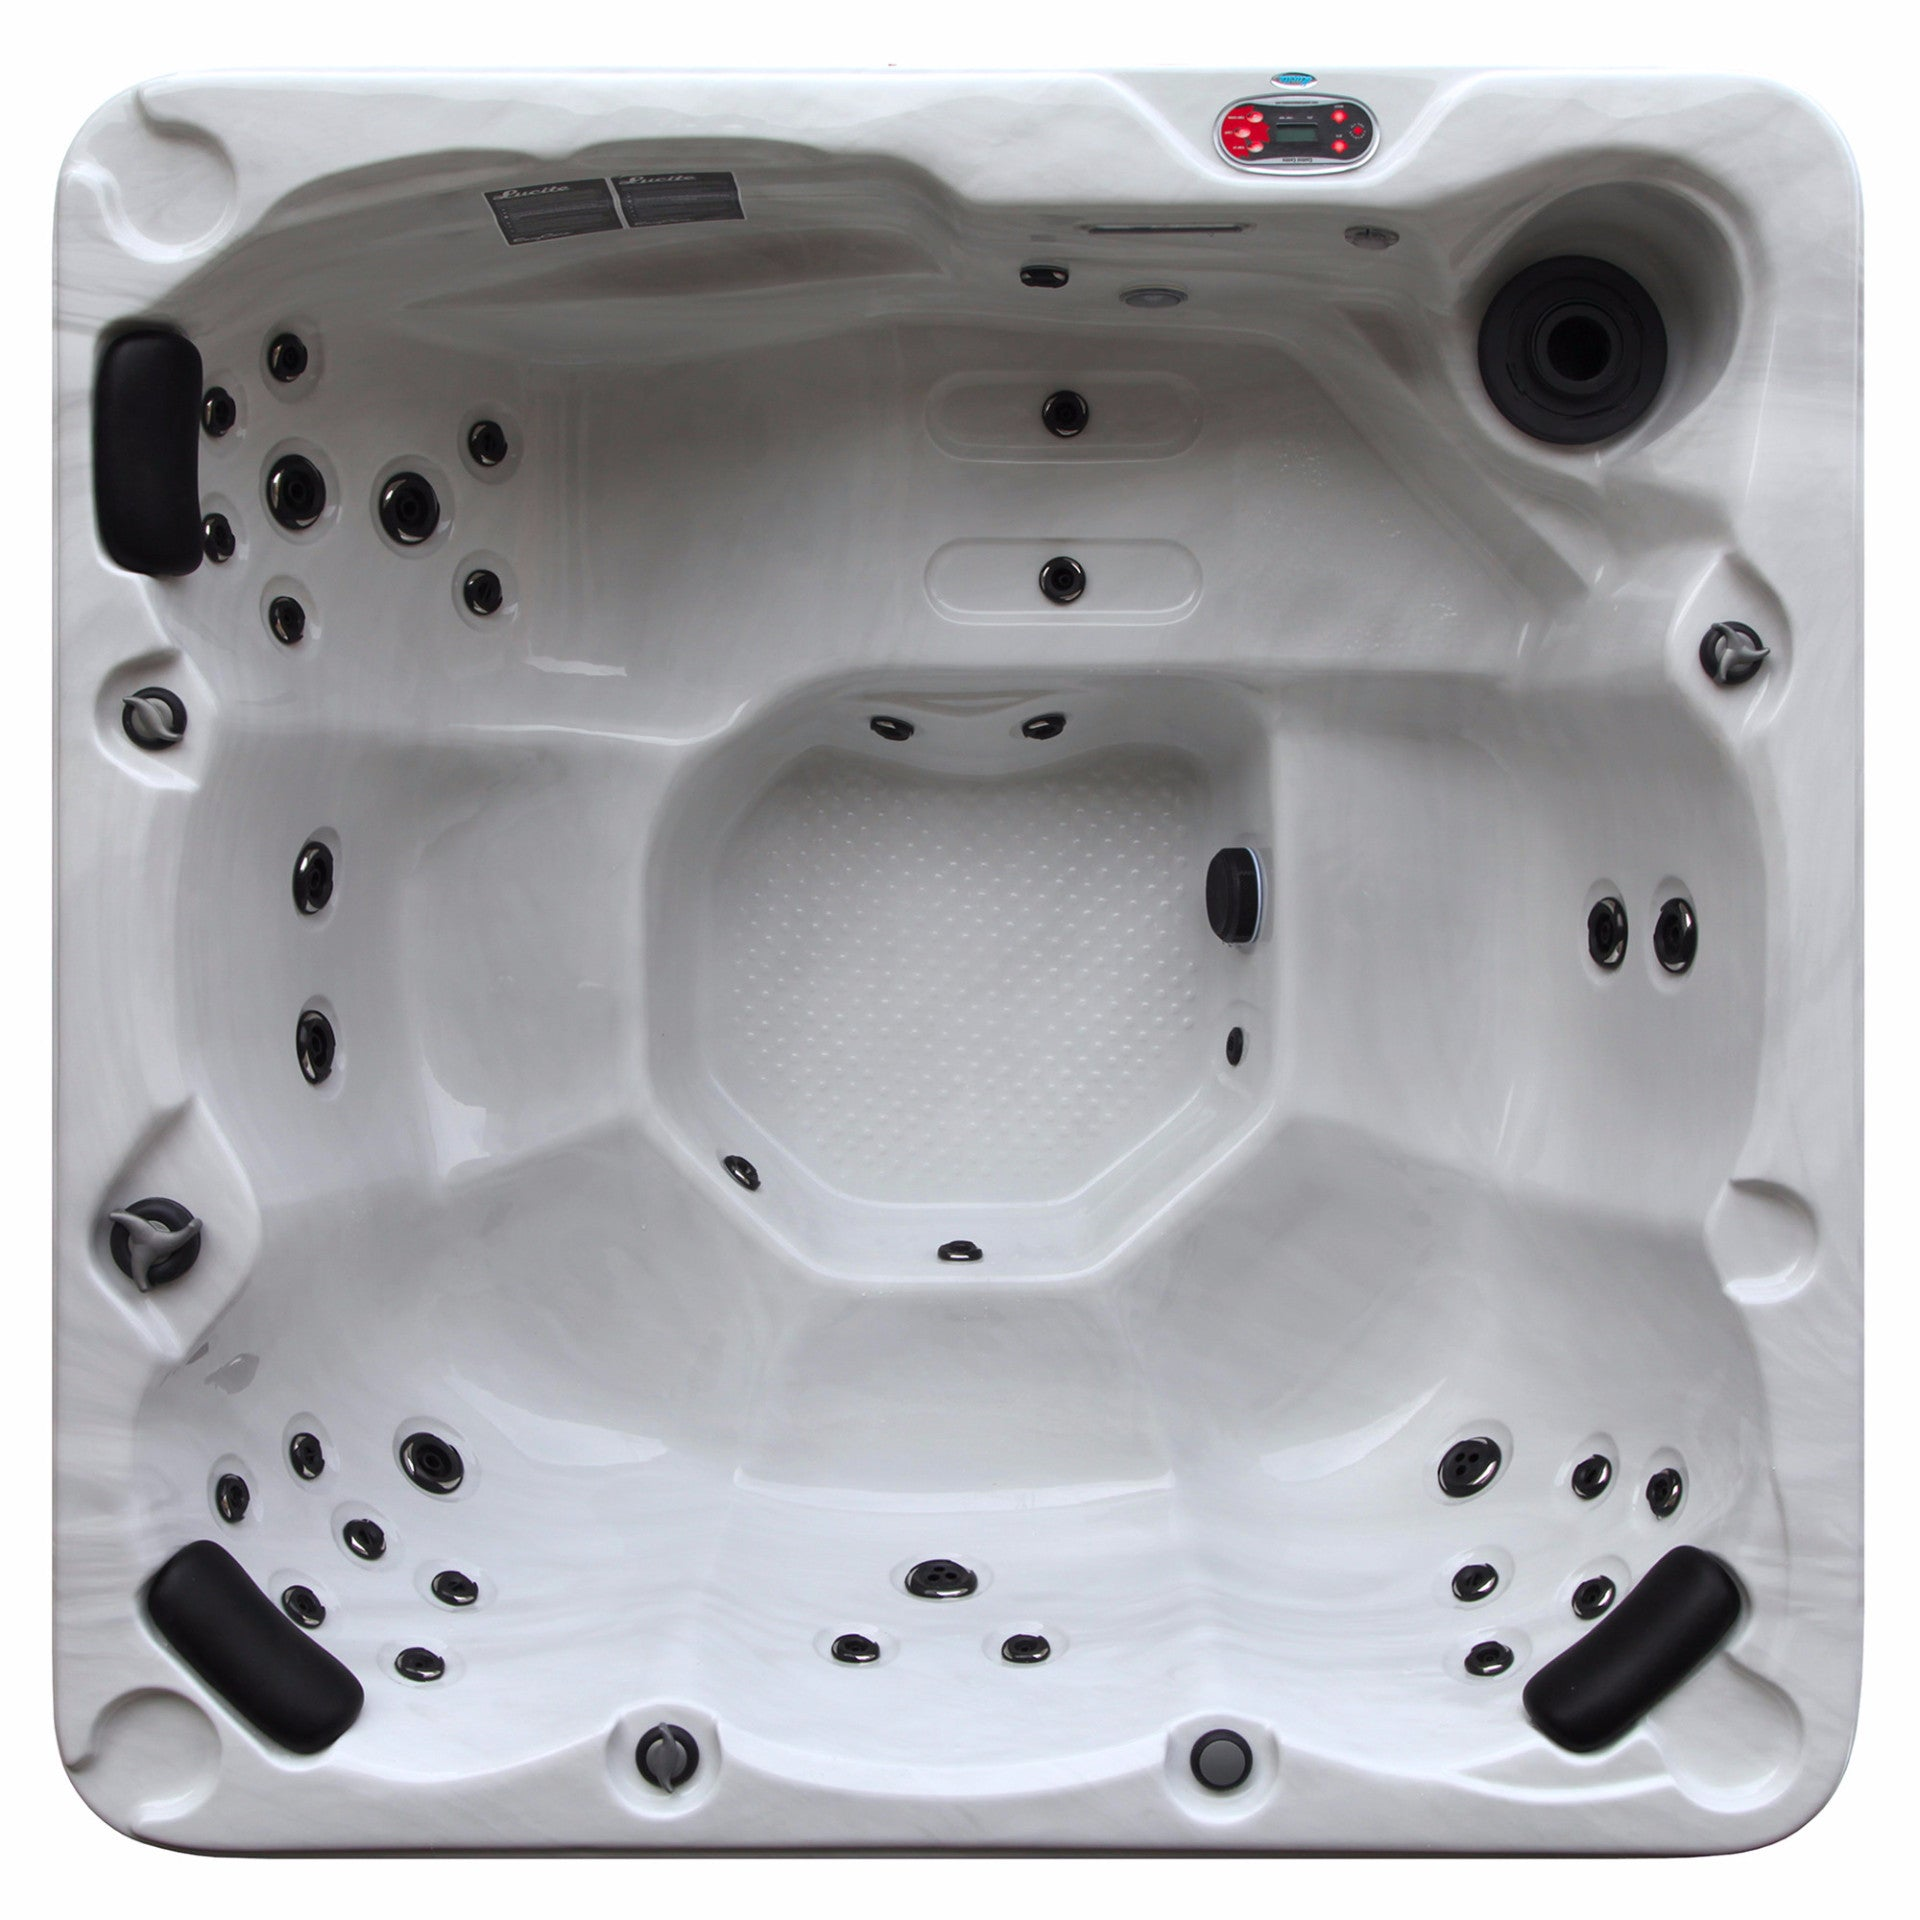 products hotspring pearl rhythm tub person tubs gallery hot parts detail spot spring